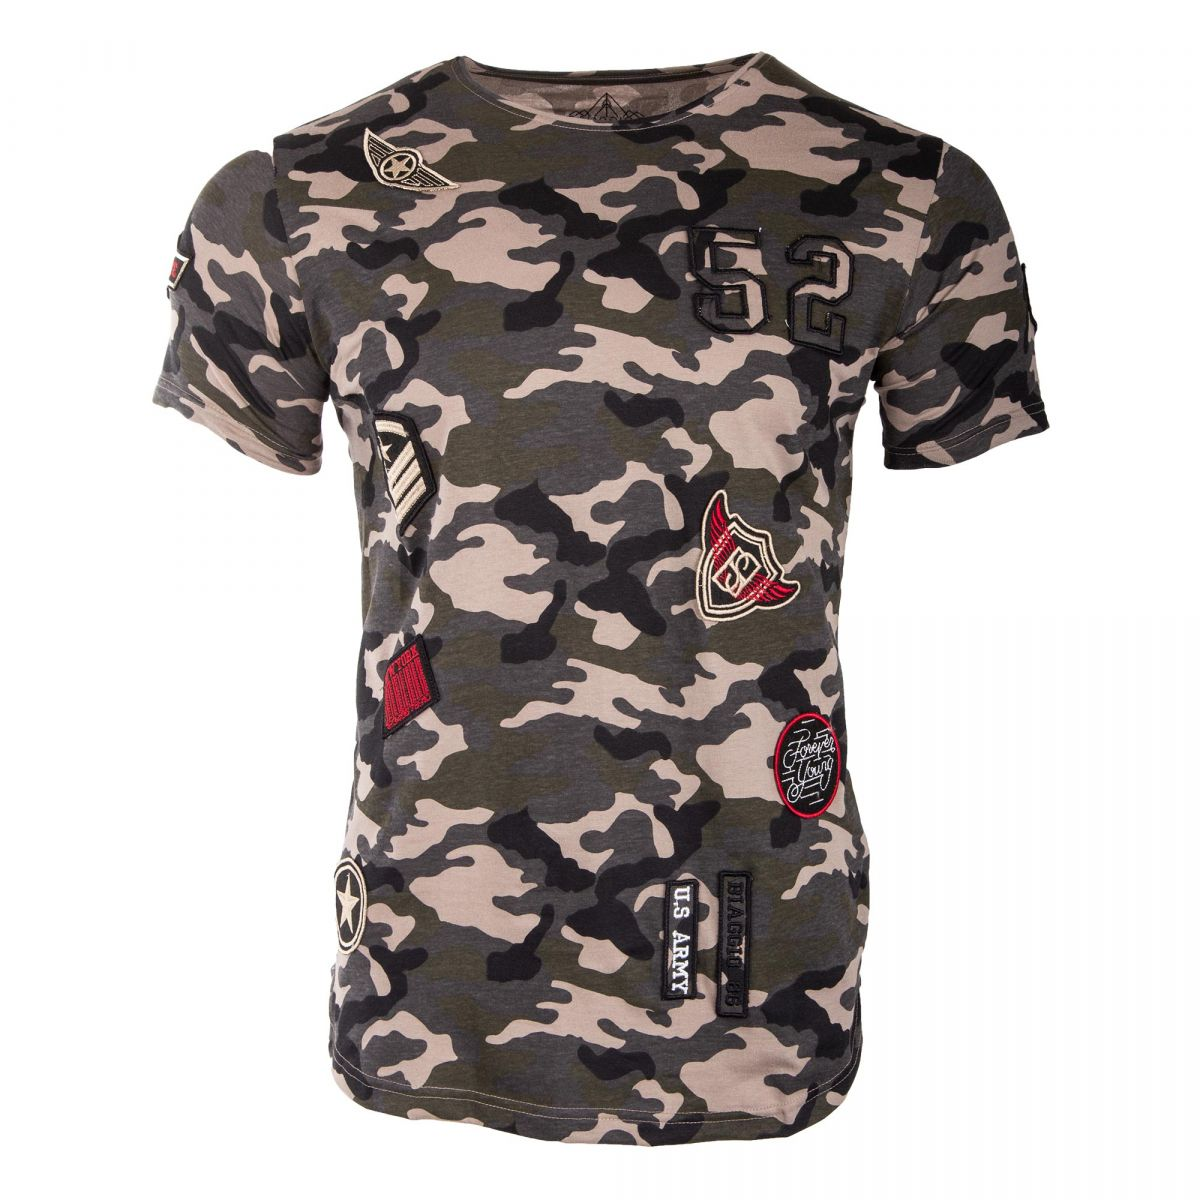 tee shirt manches courtes camouflage homme biaggio prix. Black Bedroom Furniture Sets. Home Design Ideas